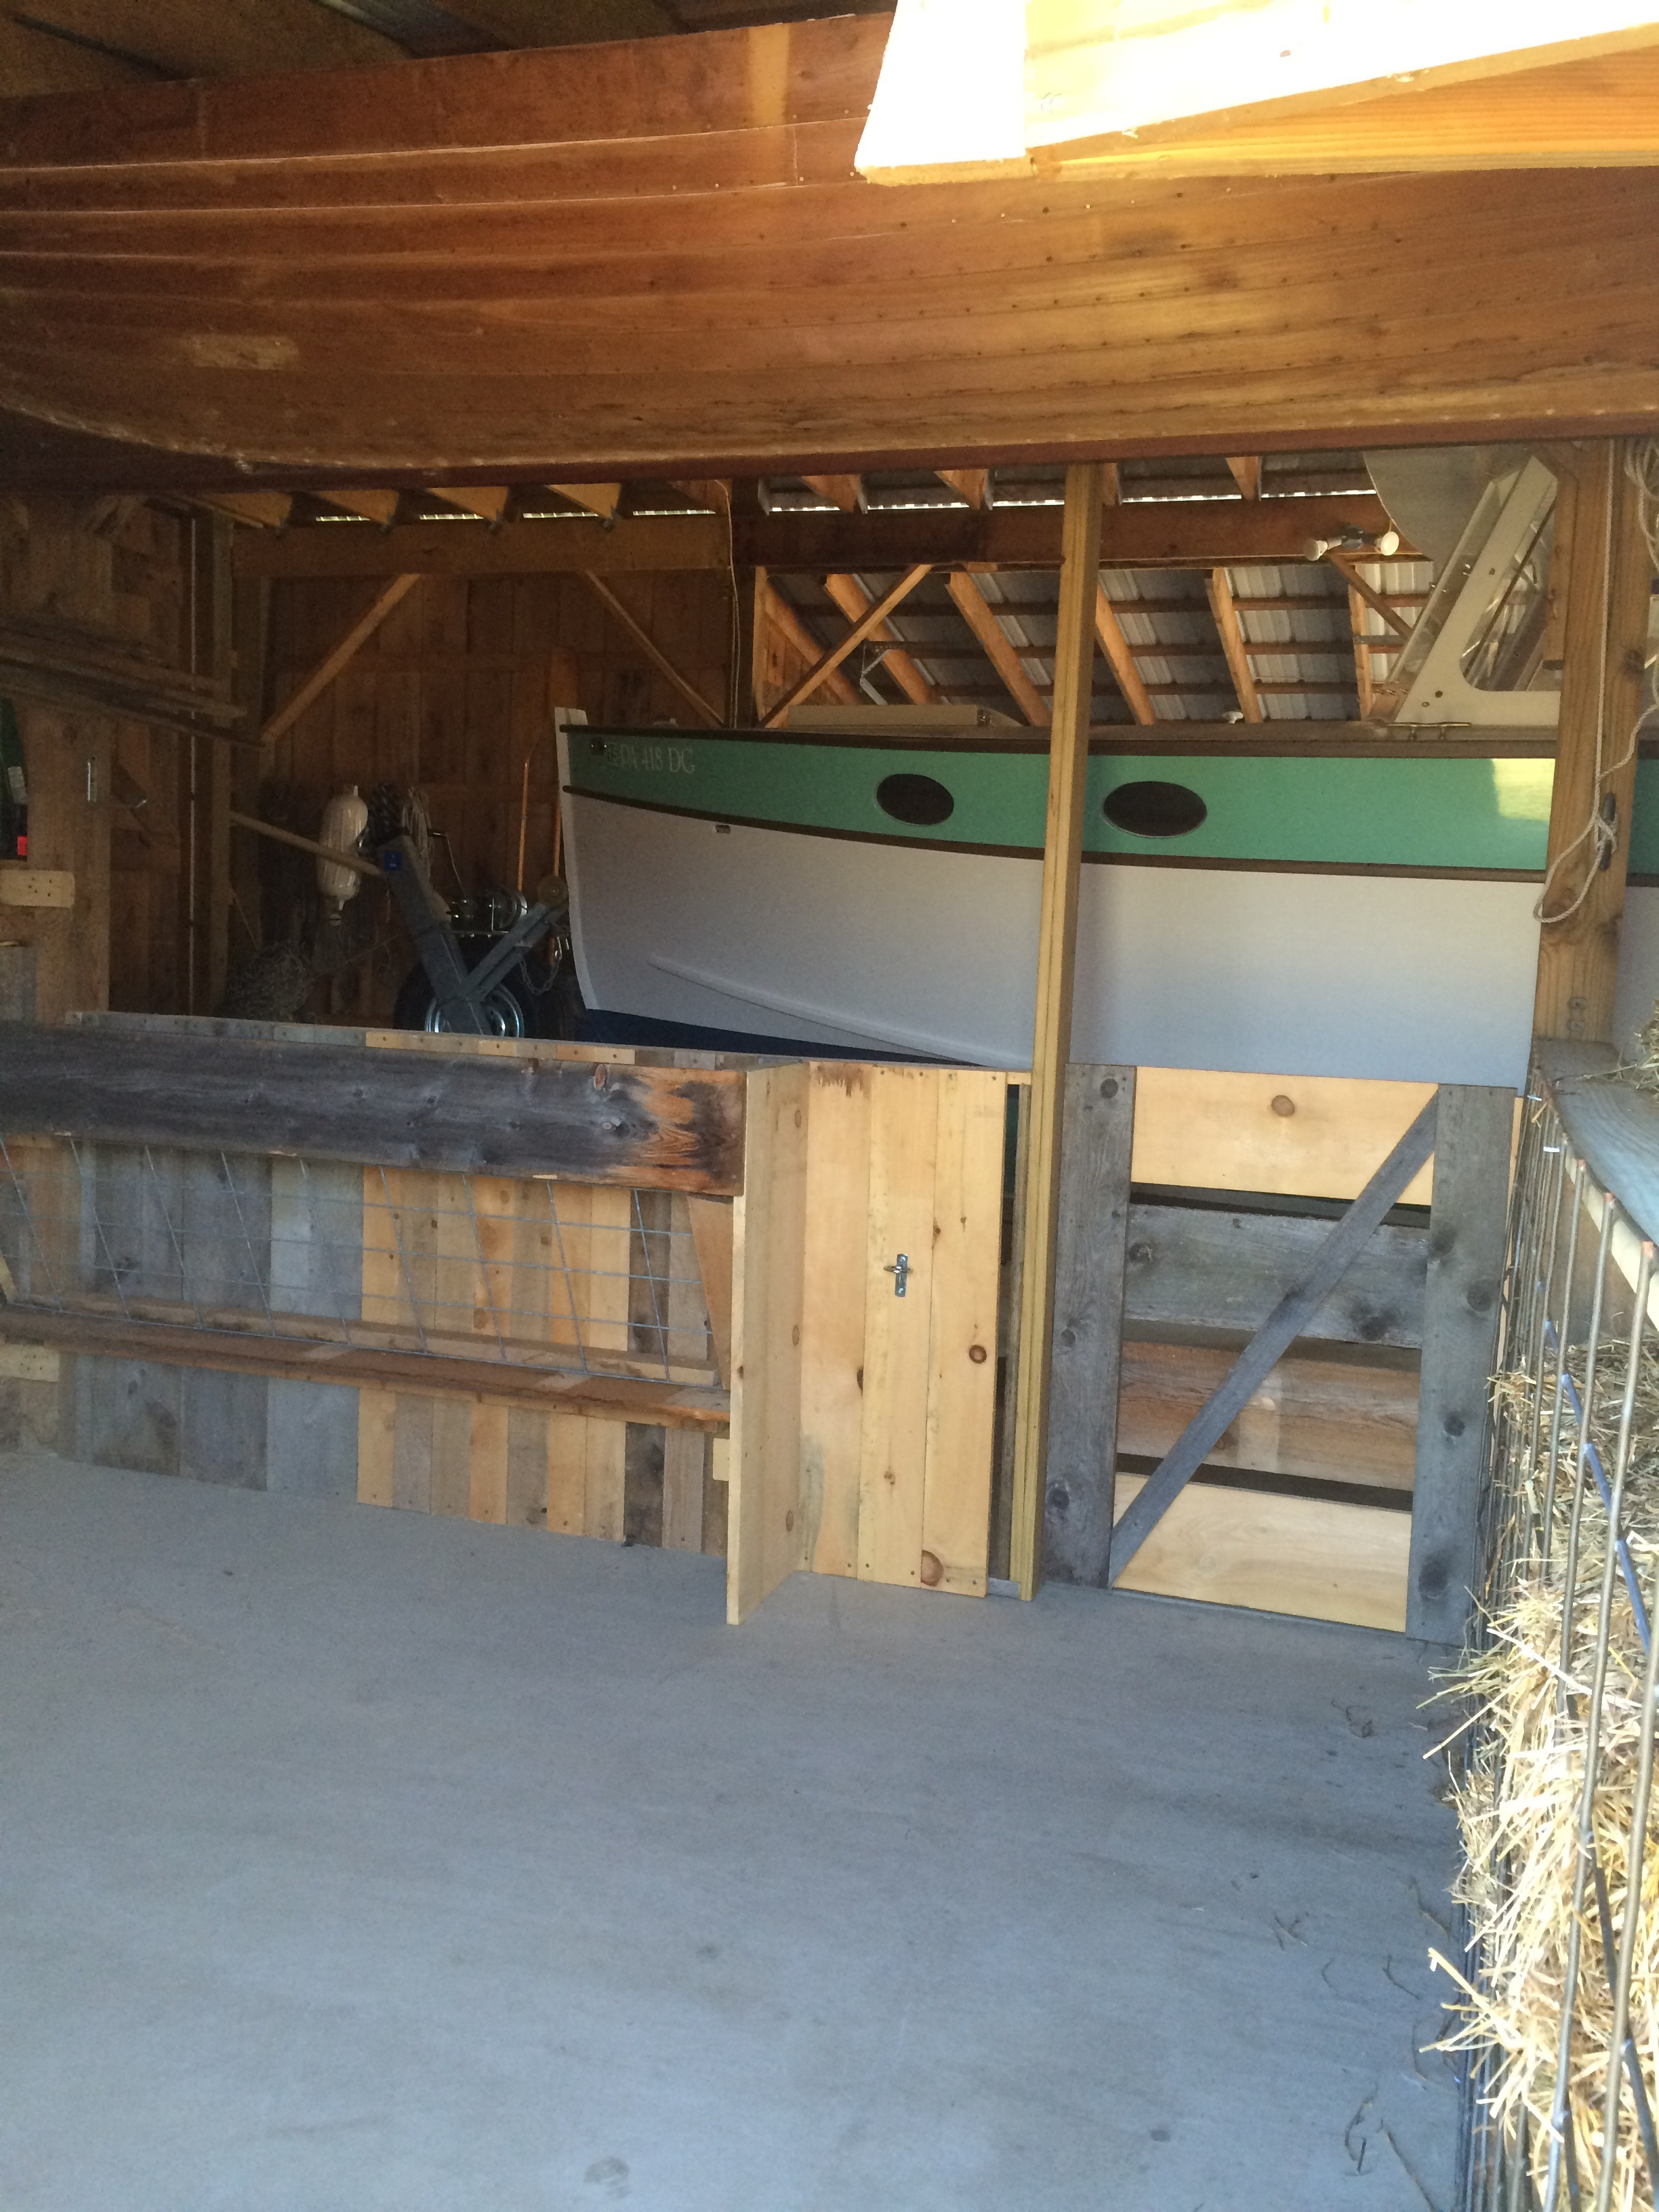 The hay feeder and water bucket are accessible from outside the pen.